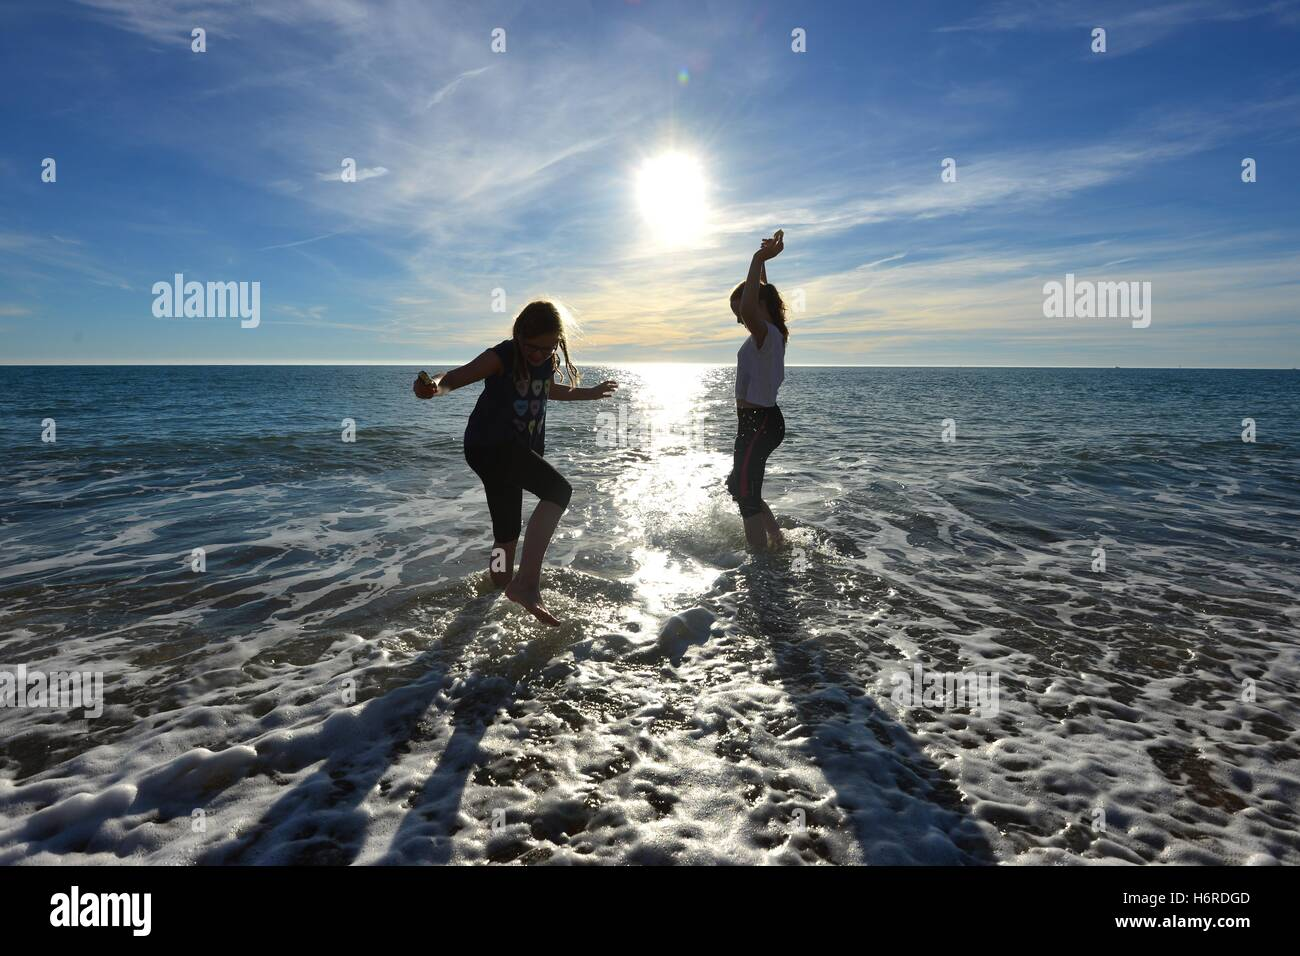 Seaford, Sussex, UK. 31st October, 2016. Children splashing in the sea with ice creams during unseasonably warm - Stock Image